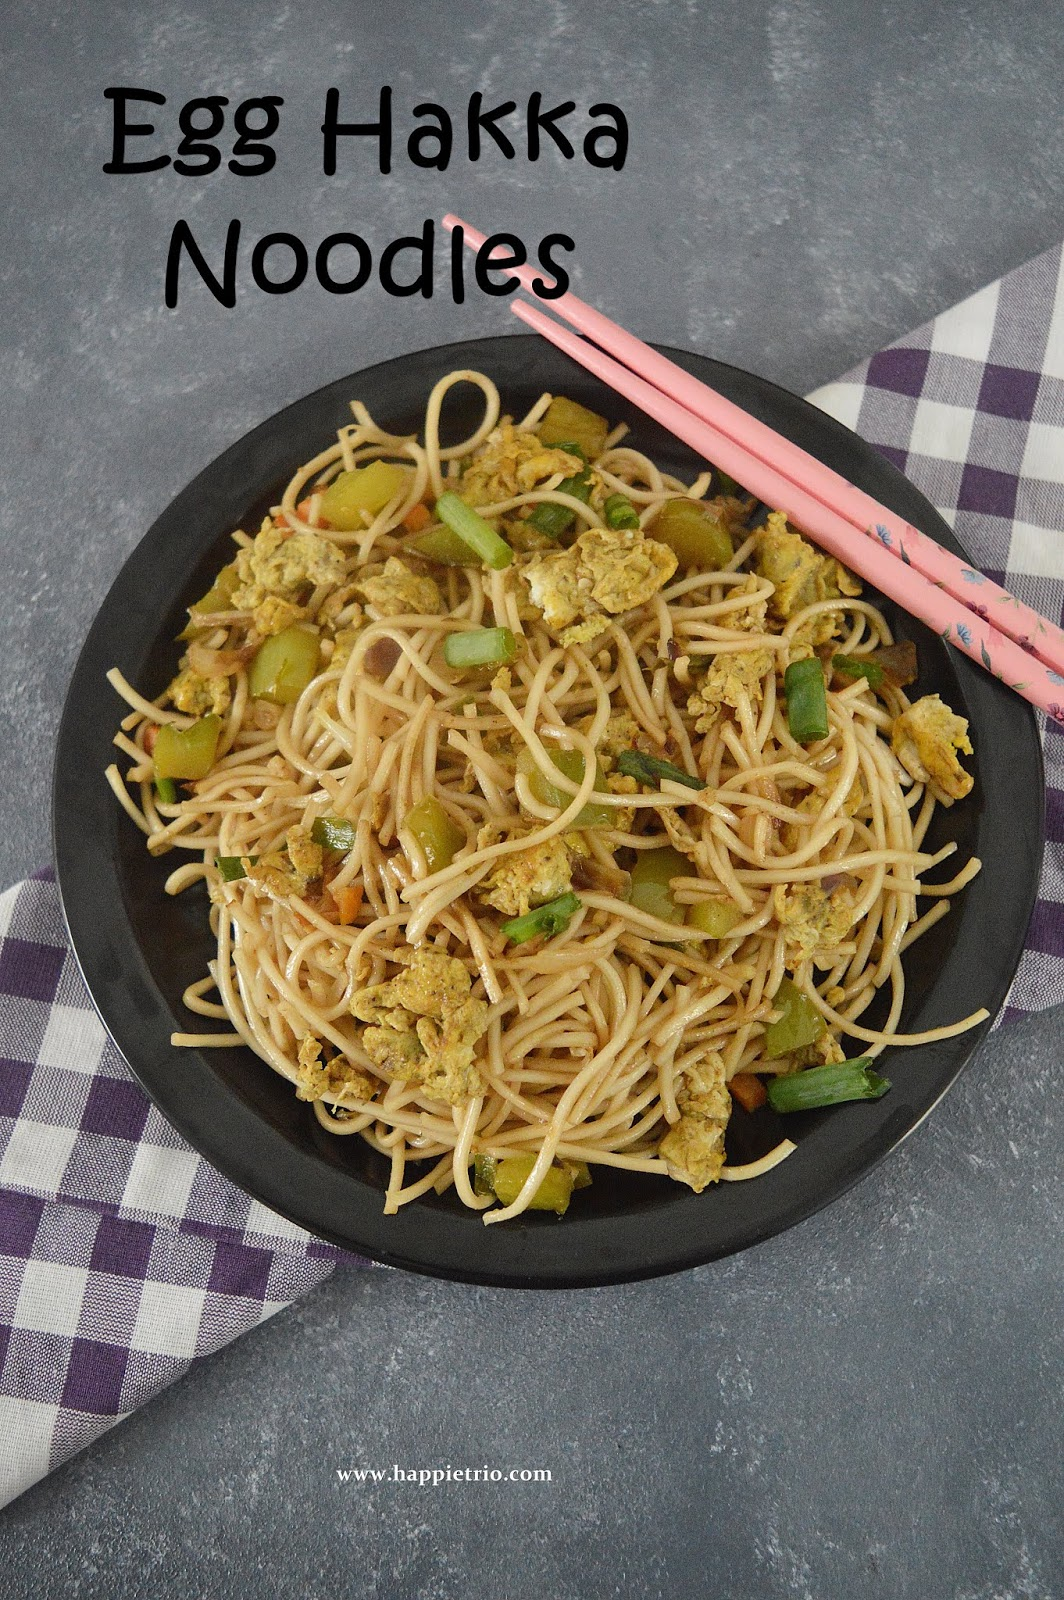 How To Prepare The Egg Noodles